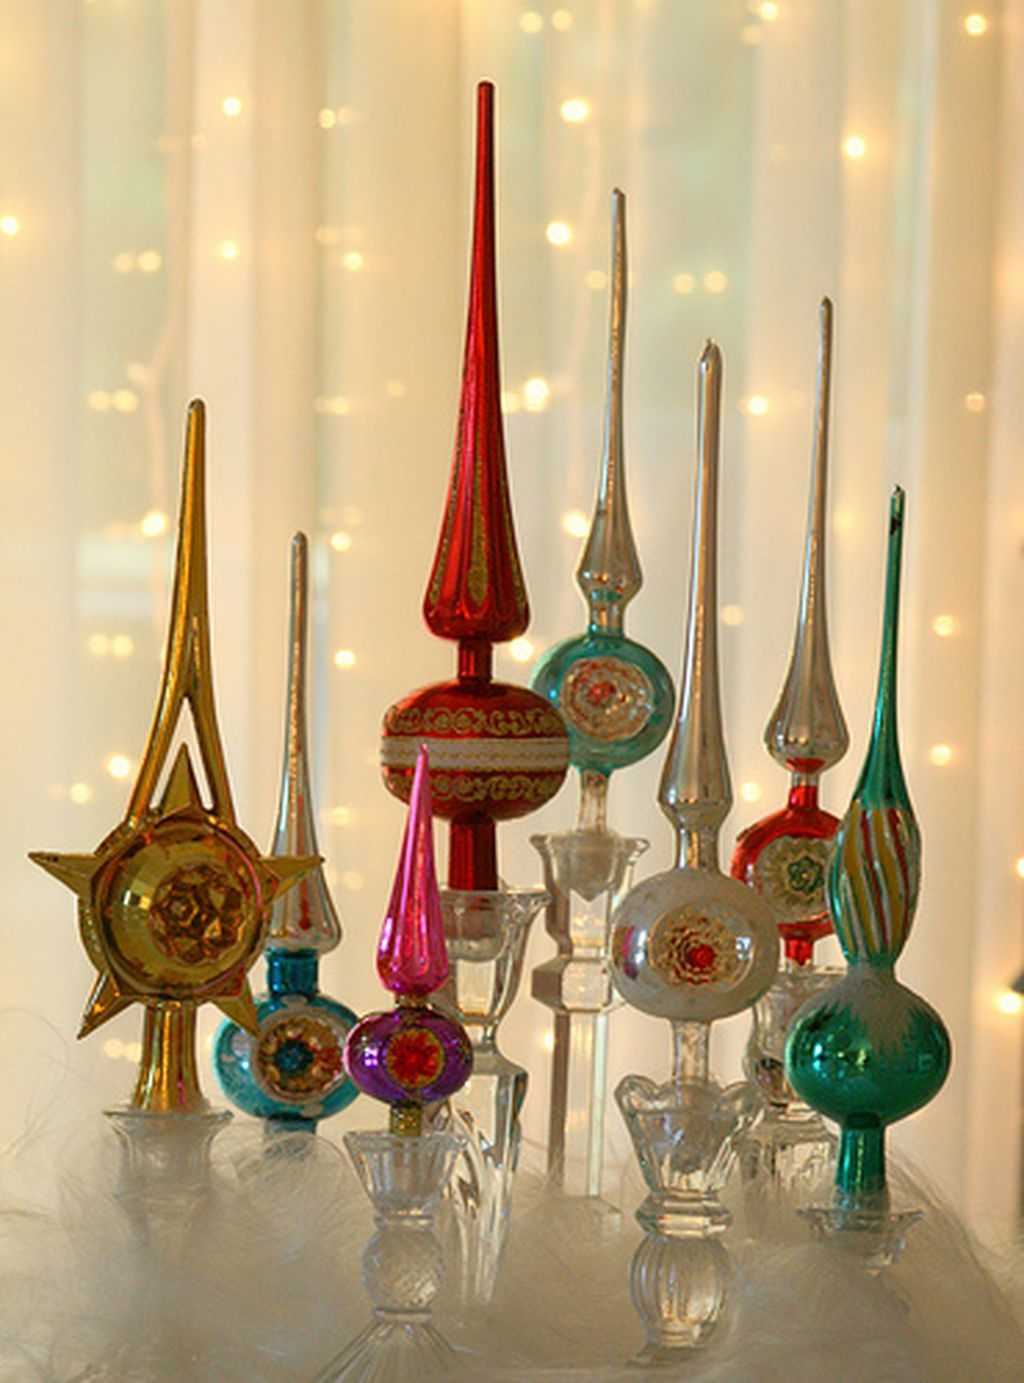 Creative DIY Christmas Candle Holders Ideas To Makes Your Room More Cheerful 57